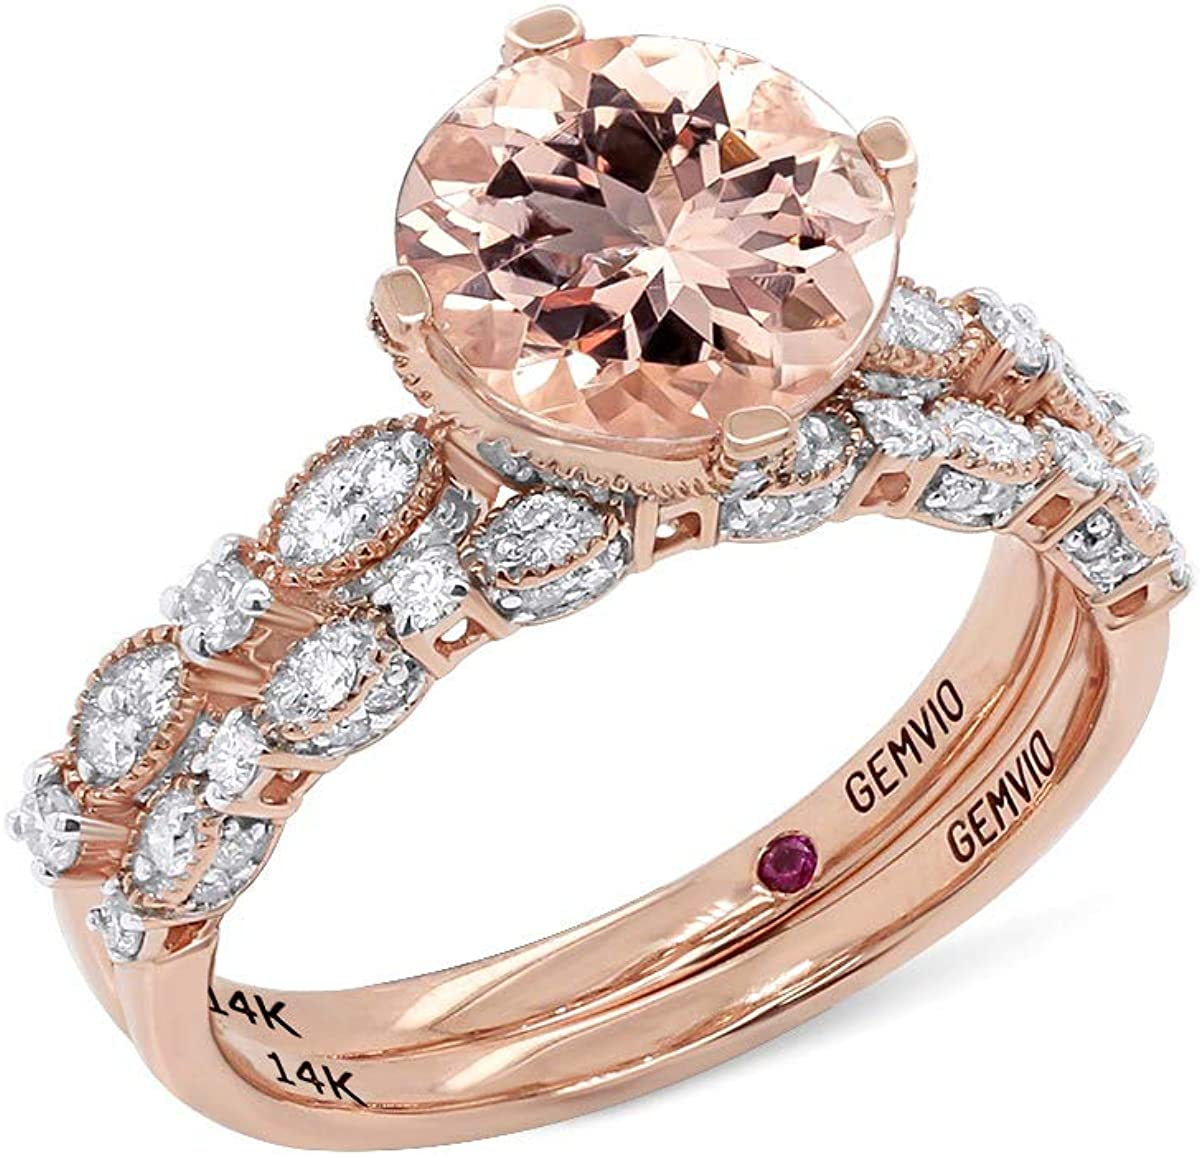 GEMVIO Collection sold out Luxury goods 2 1 5 Cttw Round 8MM Morganite Style Vintage